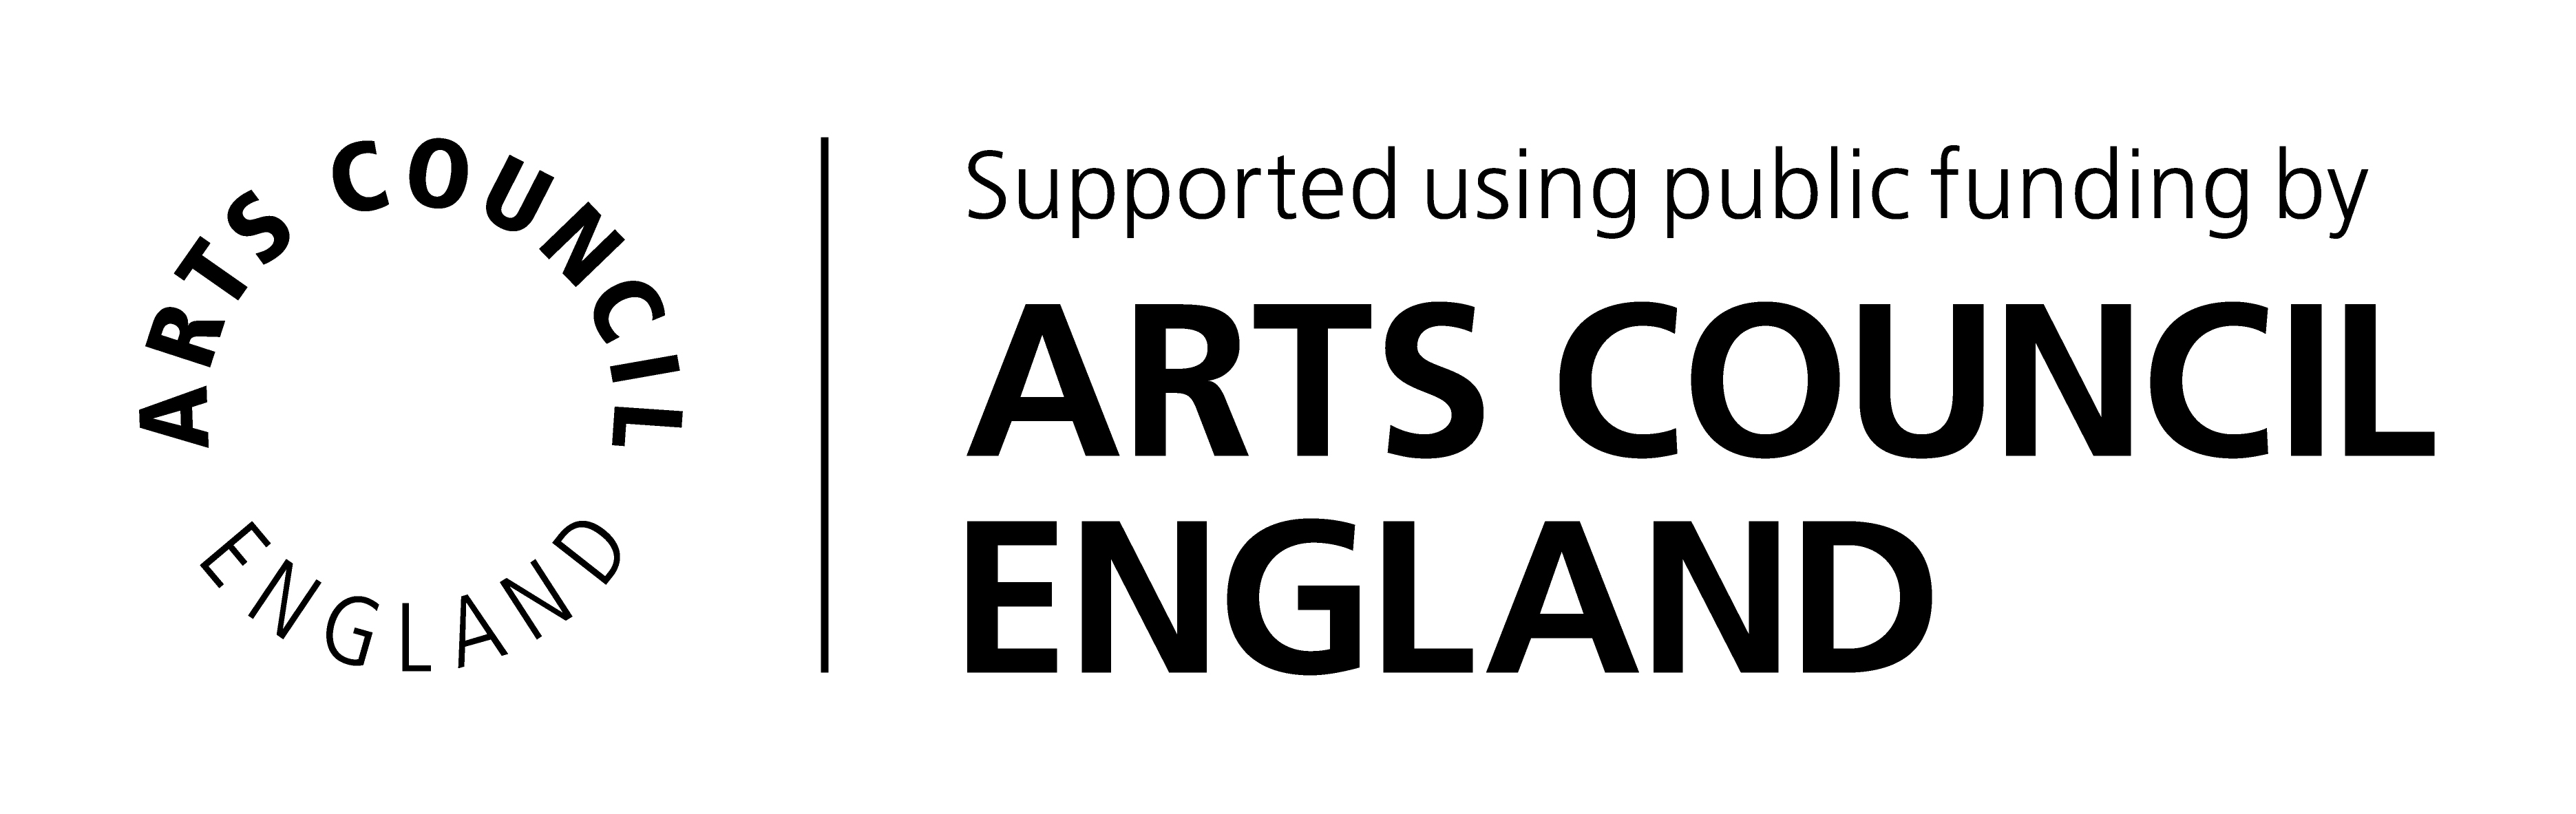 Arts Council England Grants for the Arts funder logo